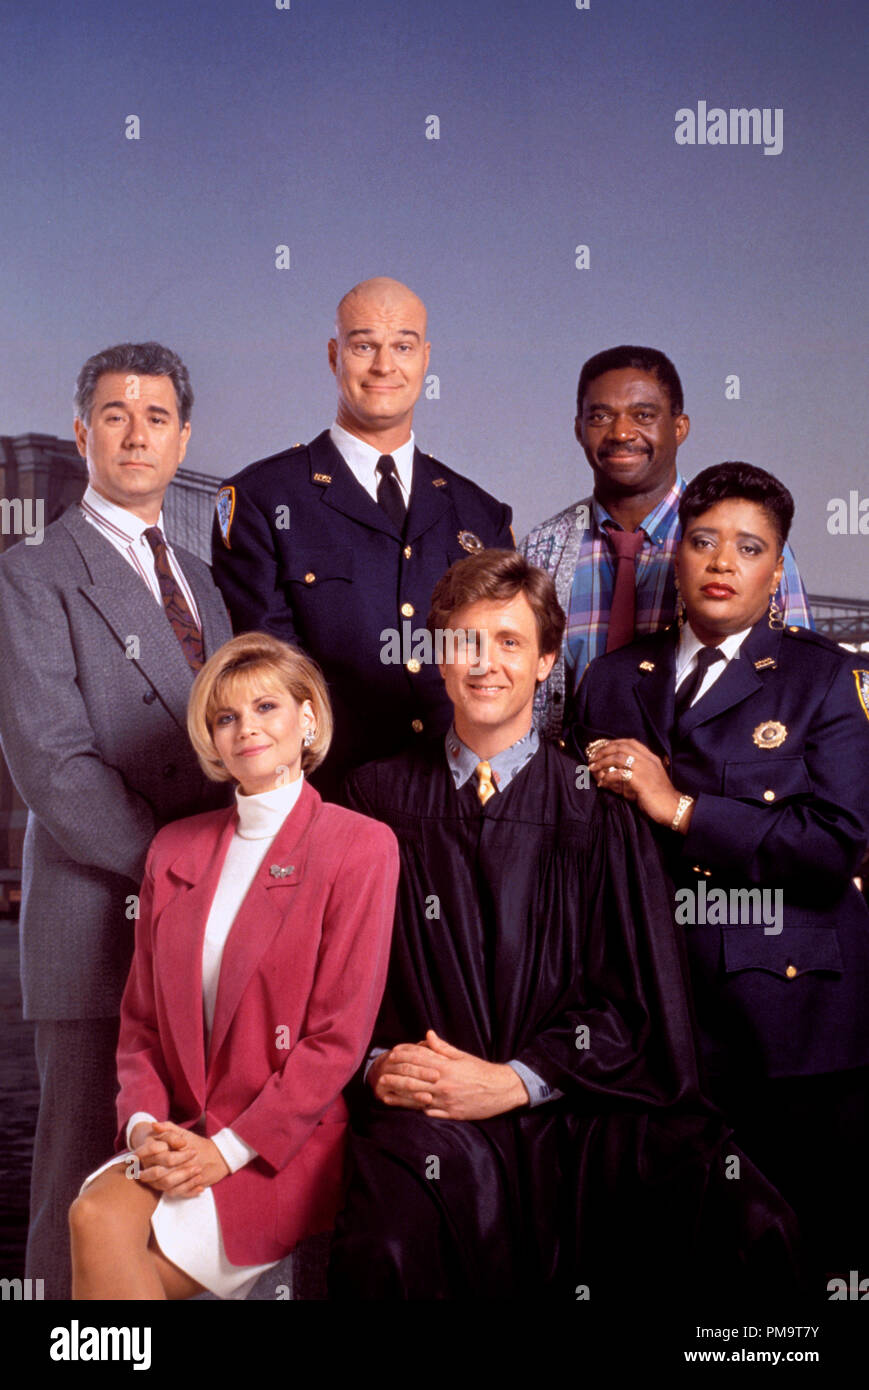 Studio Publicity Still from 'Night Court' John Larroquette, Richard Moll, Charles Robinson, Markie Post, Harry Anderson, Marsha Warfield 1988   All Rights Reserved   File Reference # 31694149THA  For Editorial Use Only - Stock Image